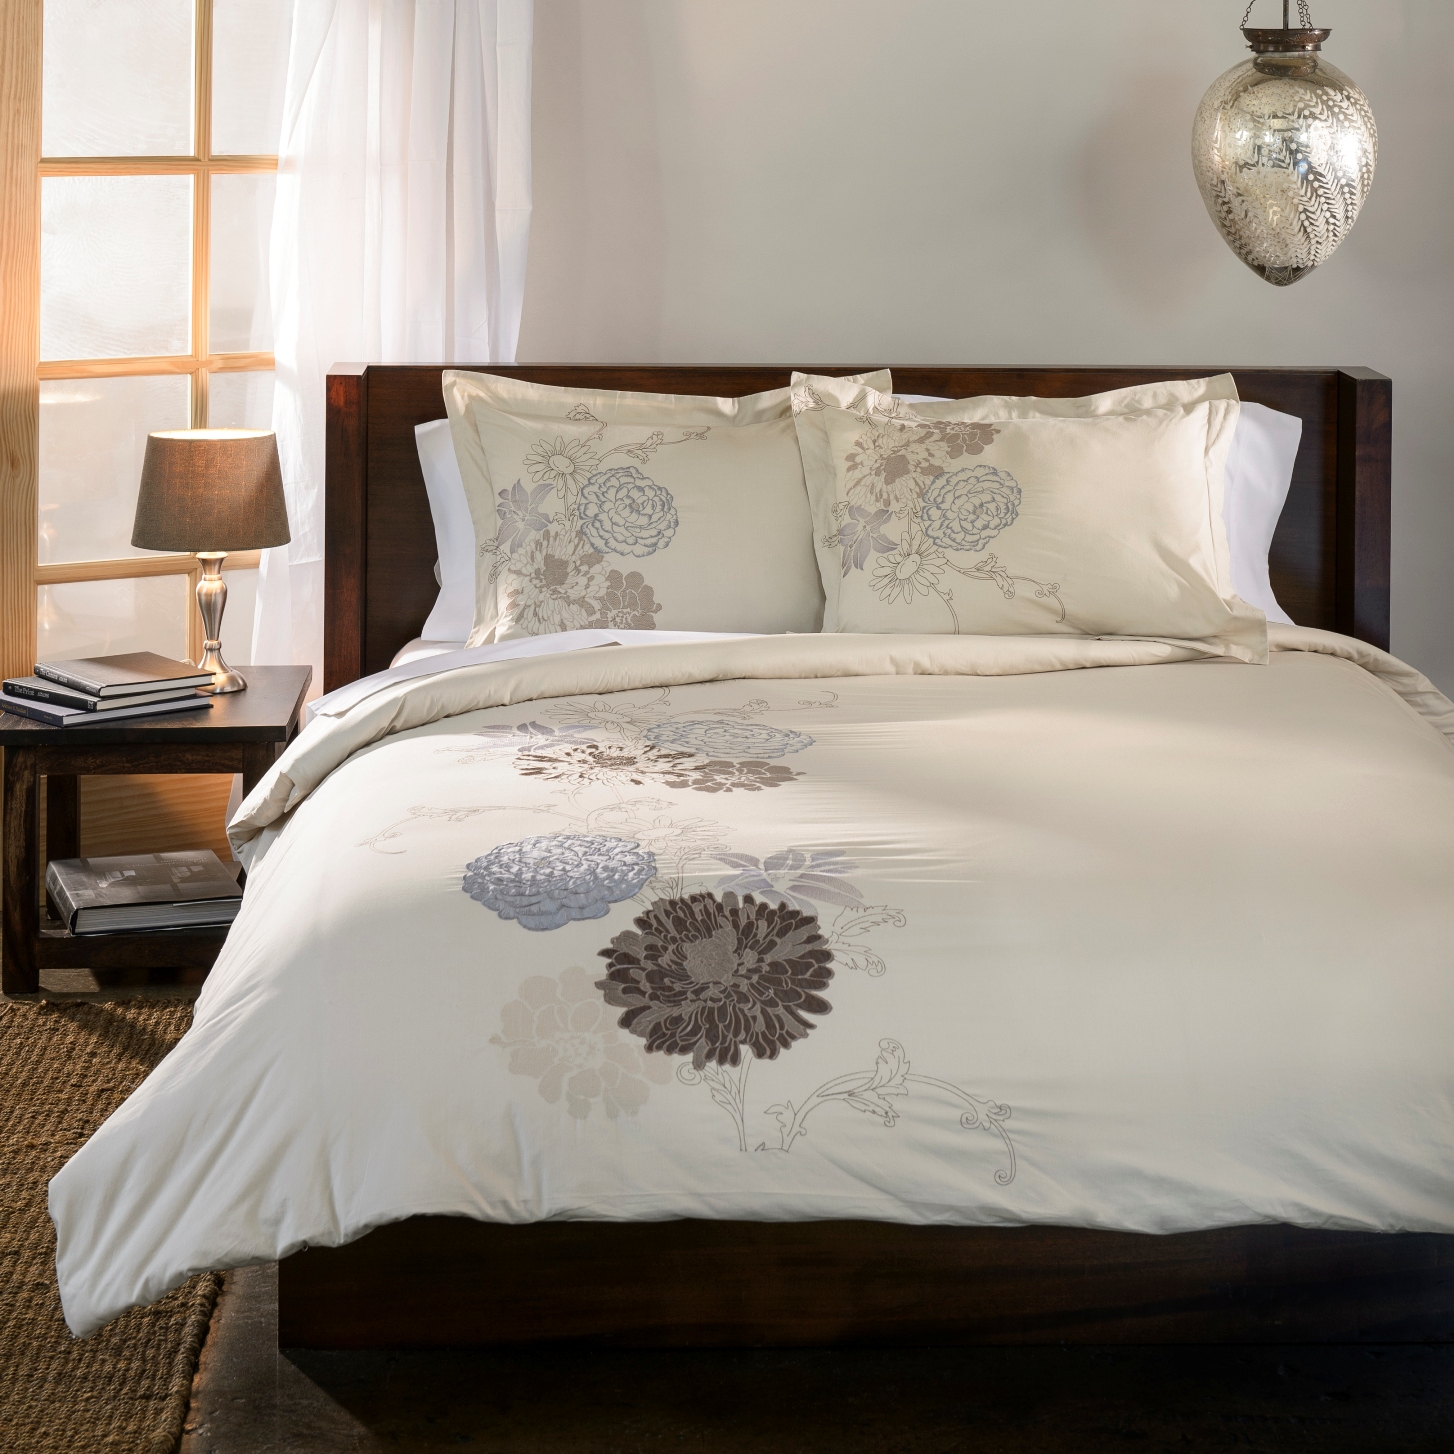 Decorative Blossom Embroidered Duvet Cover Set